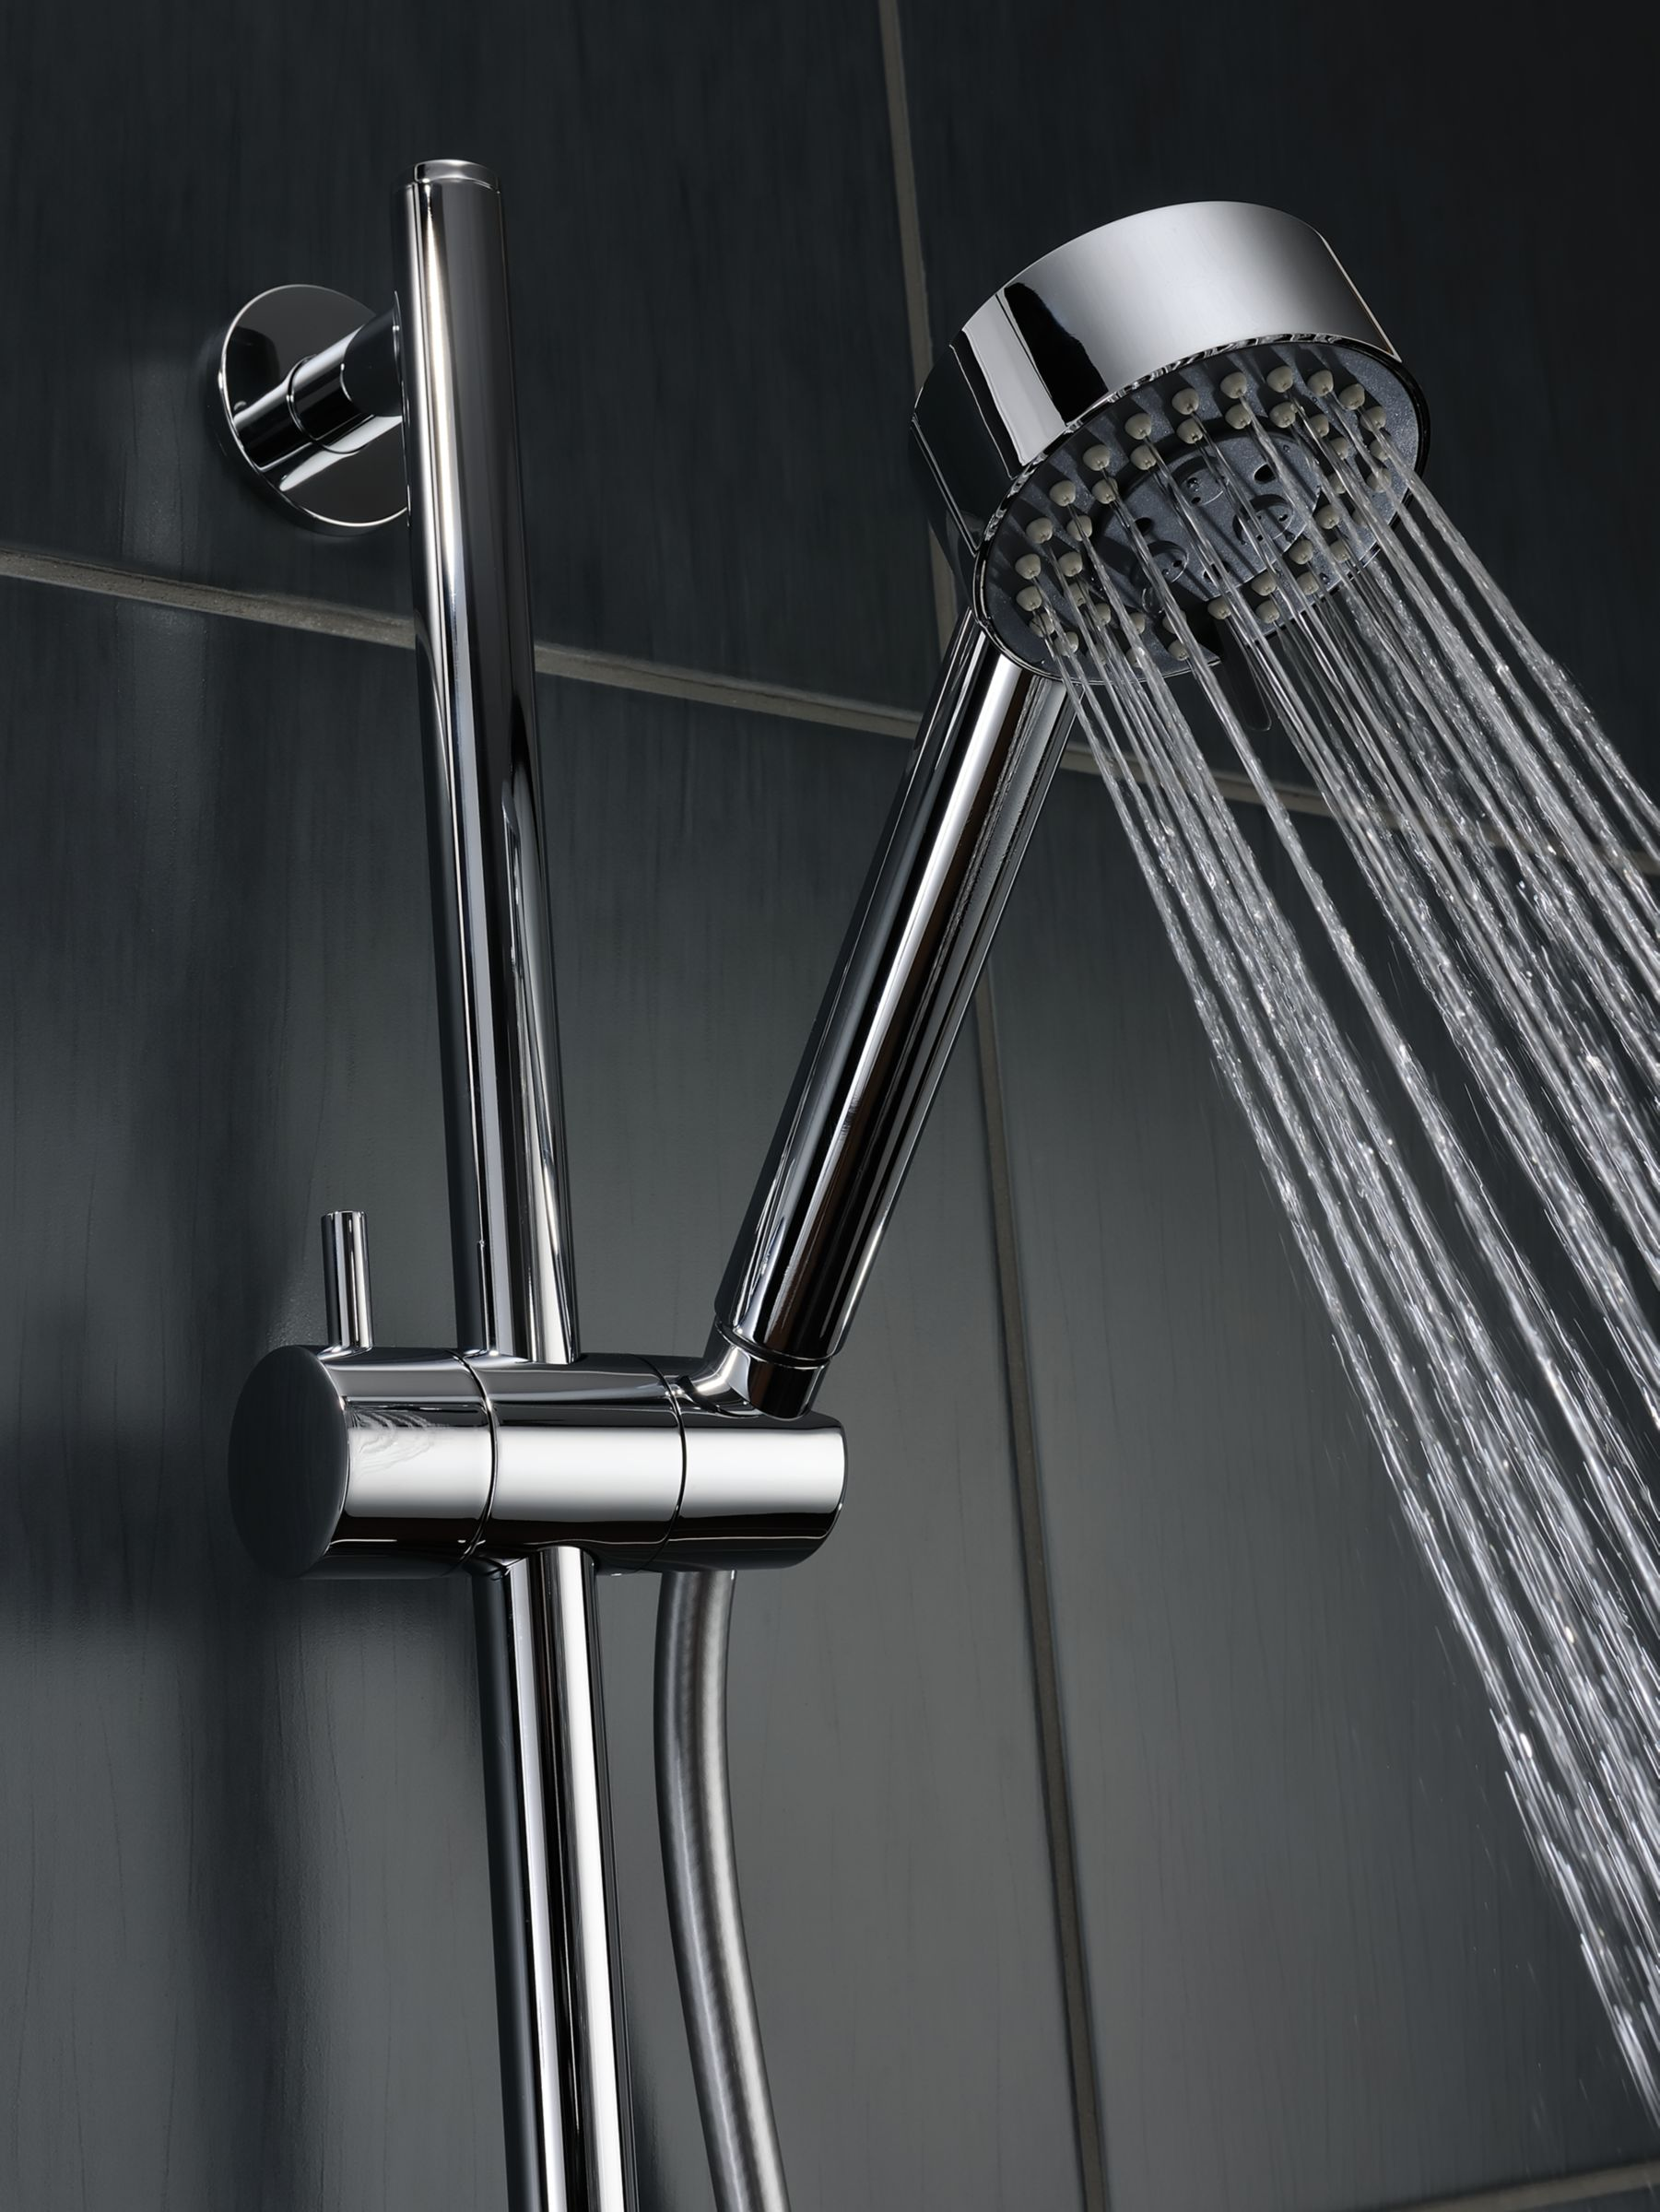 Abode Abode Euphoria AB2316 Wall Mounted Thermostatic Shower Valve and Sliding Rail Kit